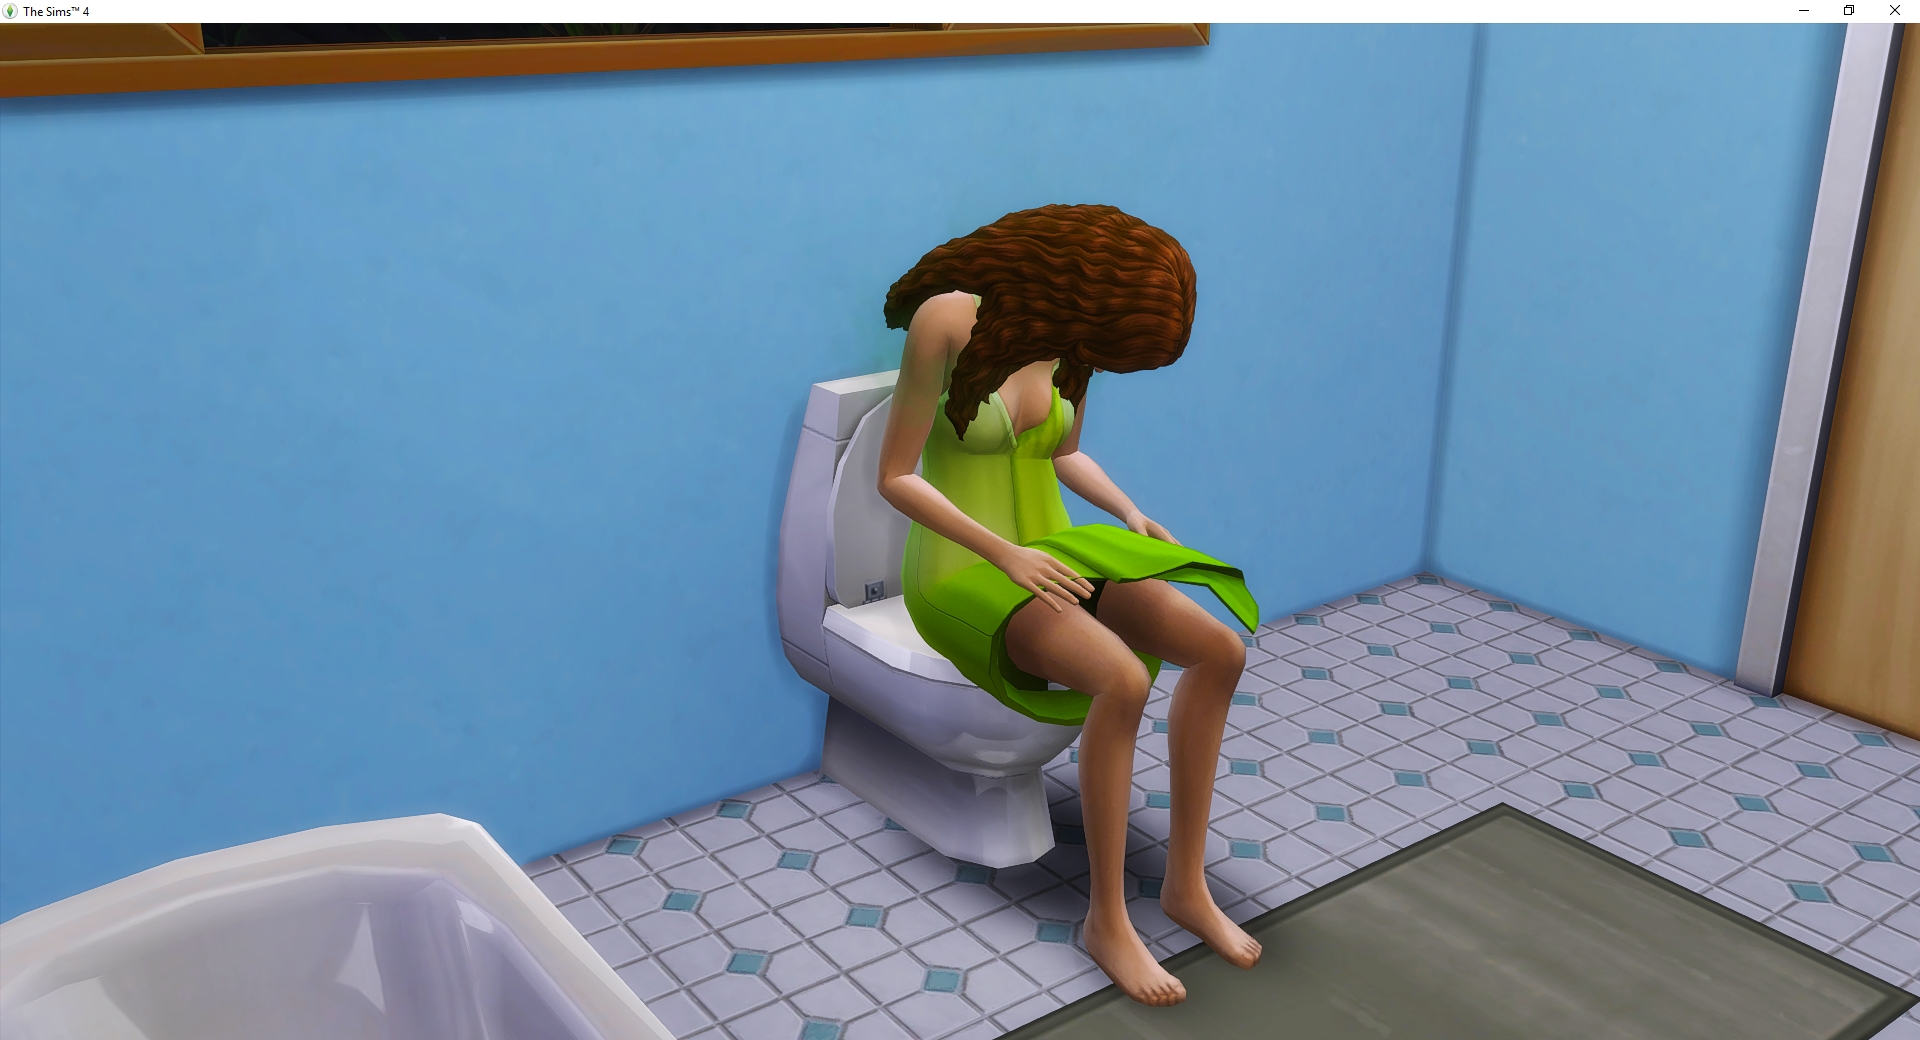 Masterful Sims: Getting Started